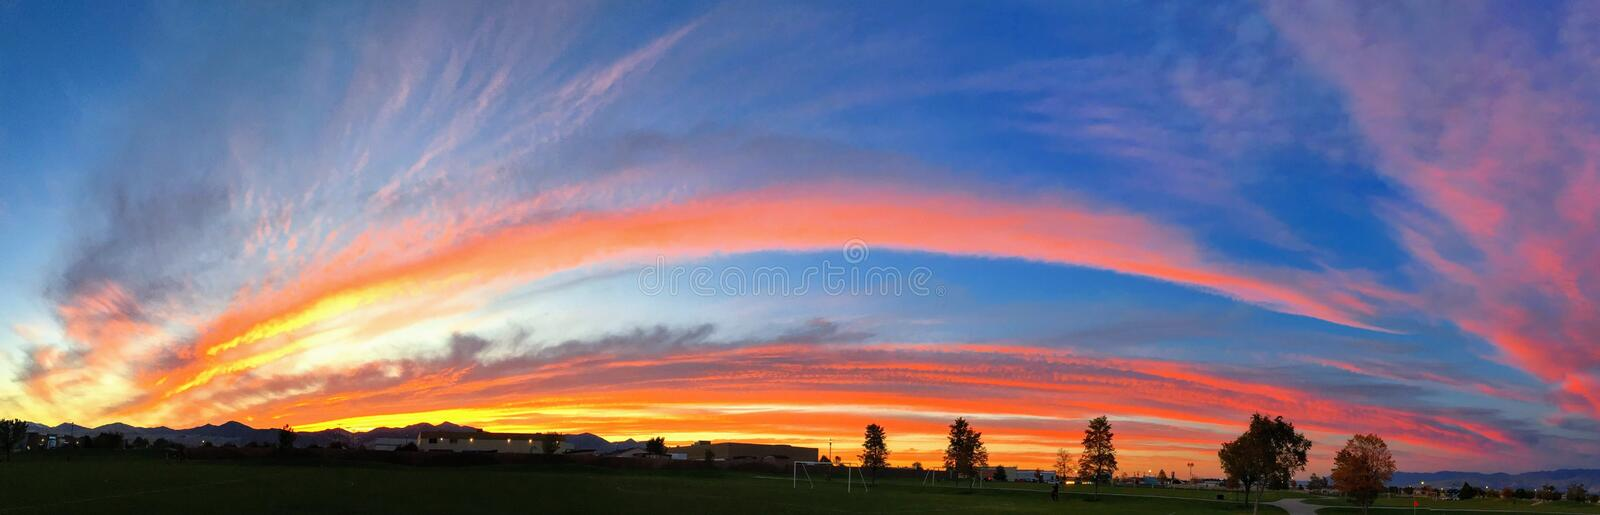 Panoramic striking sunset background with vivid orange, blue, red and yellow, in the shape of a rainbow. royalty free stock image